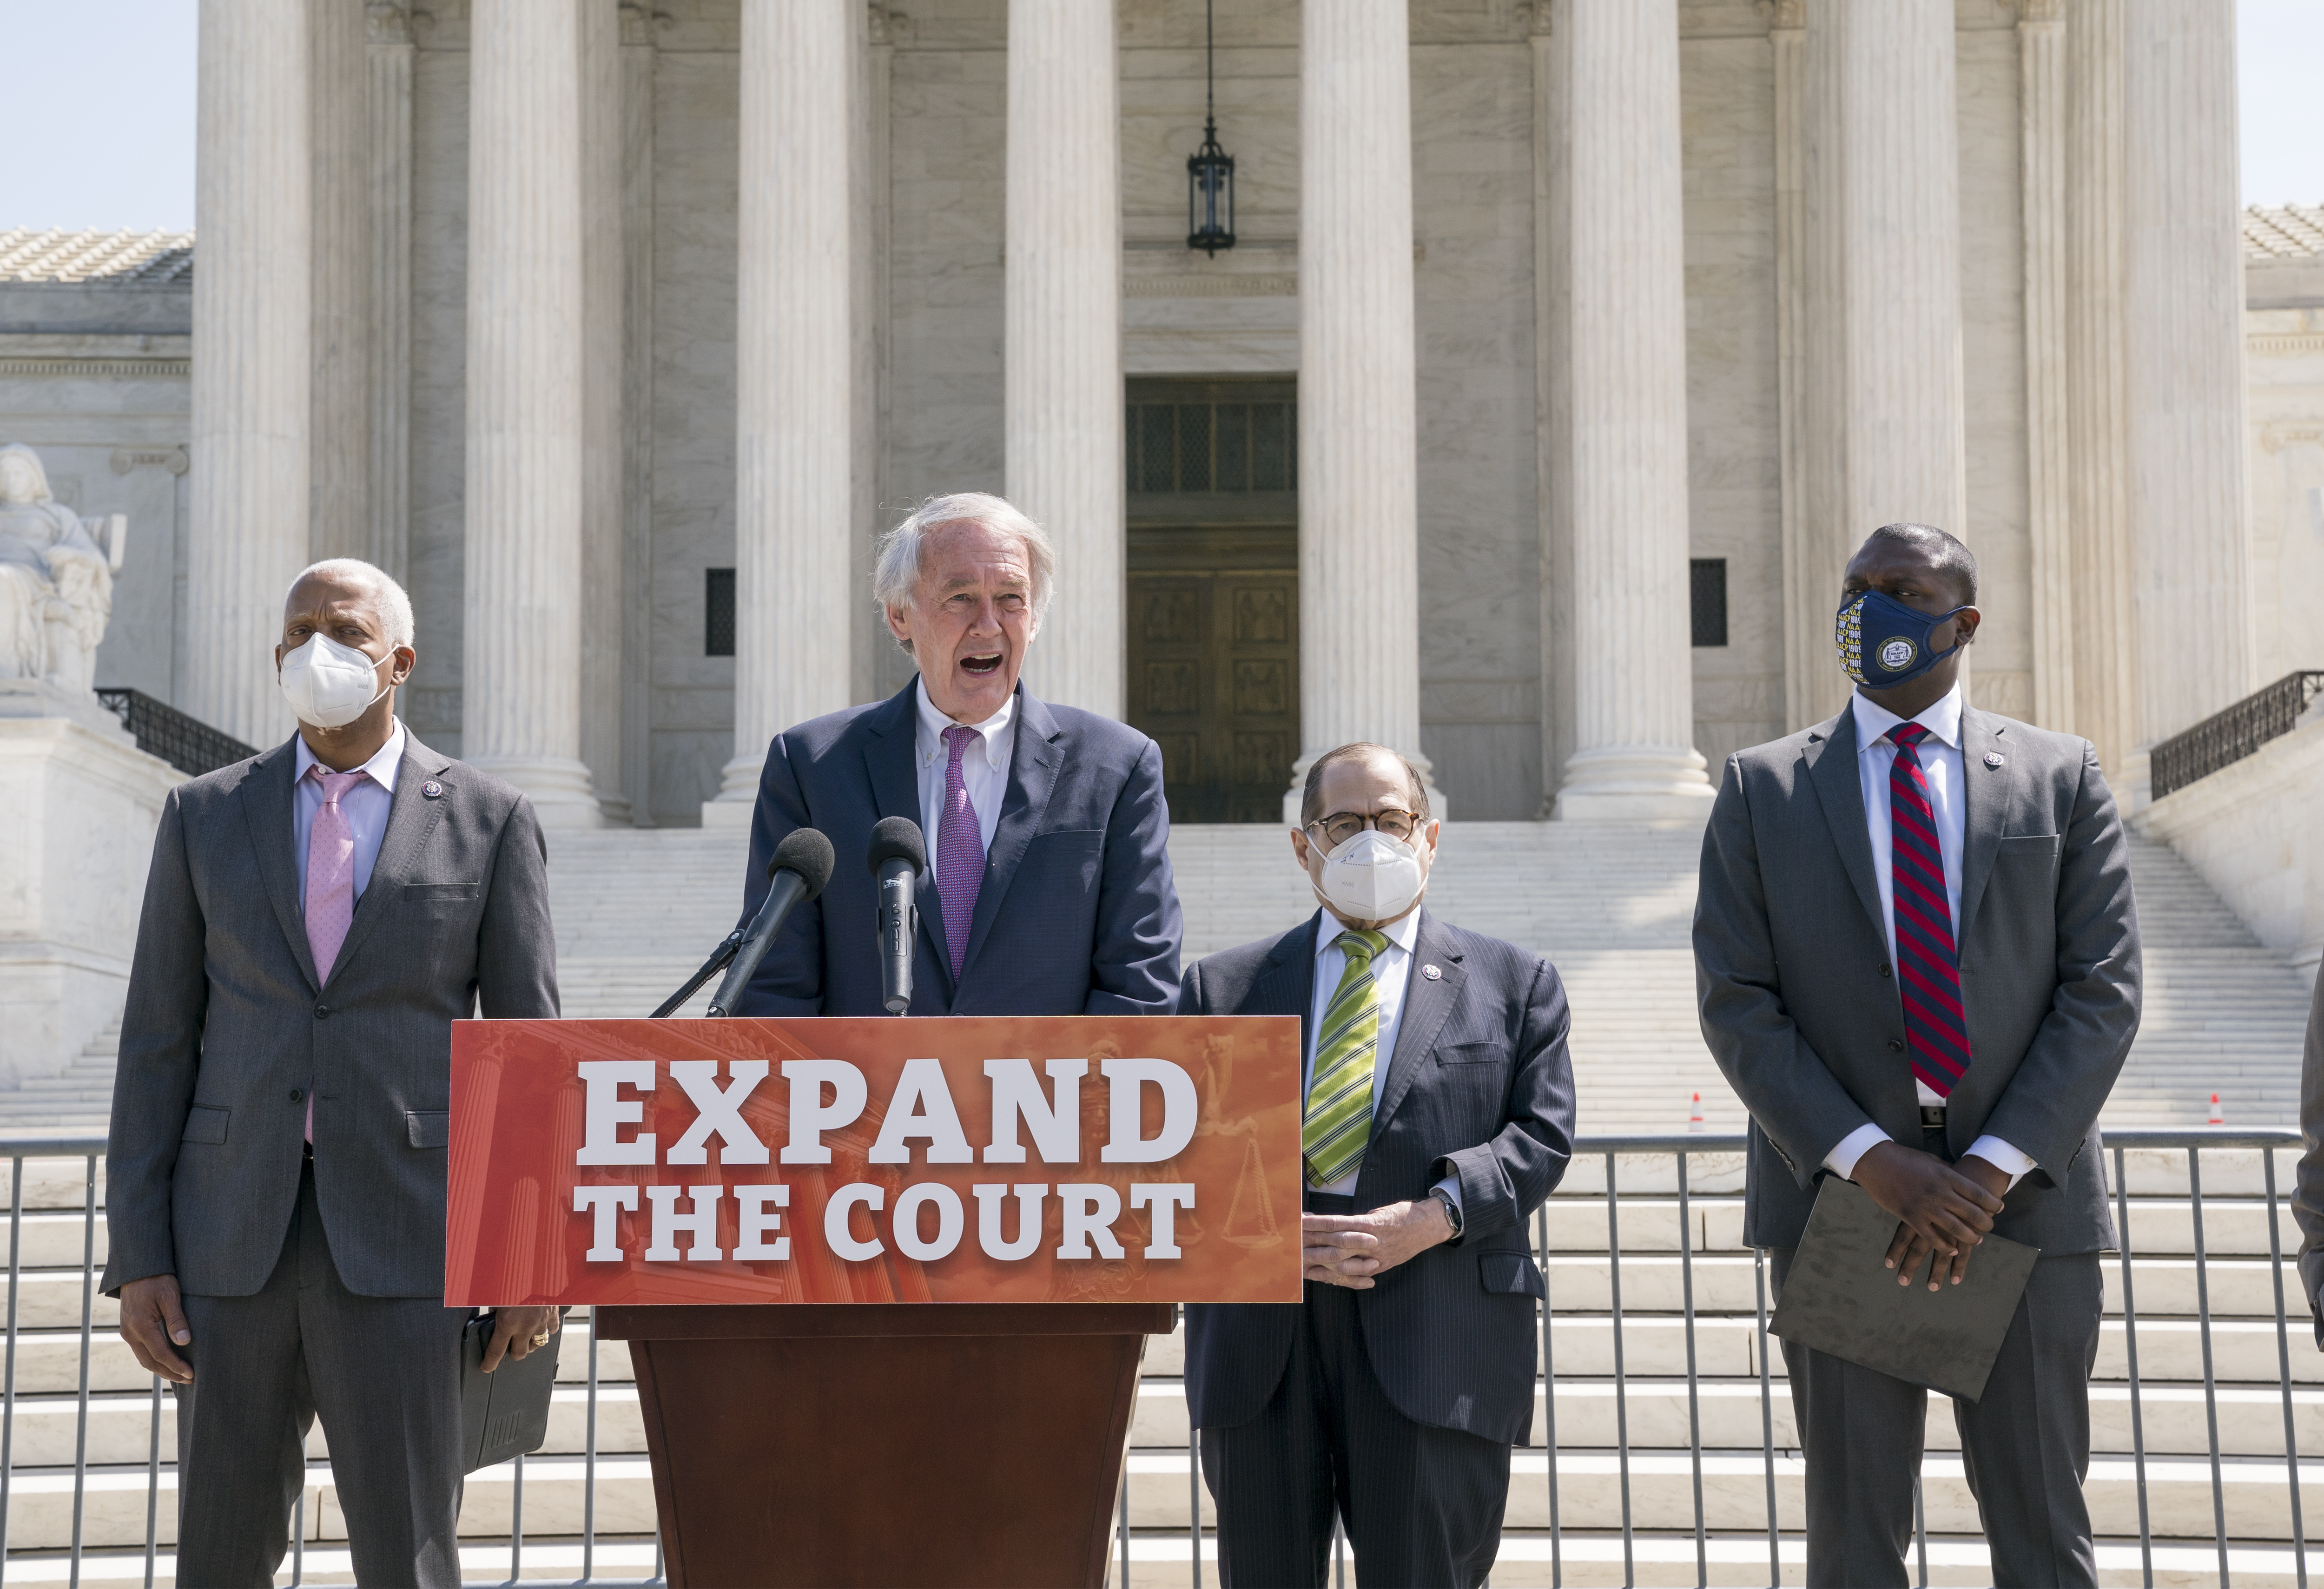 From left, Rep. Hank Johnson, D-Ga., Sen. Ed Markey, D-Mass., House Judiciary Committee Chairman Jerrold Nadler, D-N.Y., and Rep. Mondaire Jones, D-N.Y., hold a news conference outside the Supreme Court to announce legislation to expand the number of seats on the high court, on Capitol Hill in Washington, Thursday, April 15, 2021.